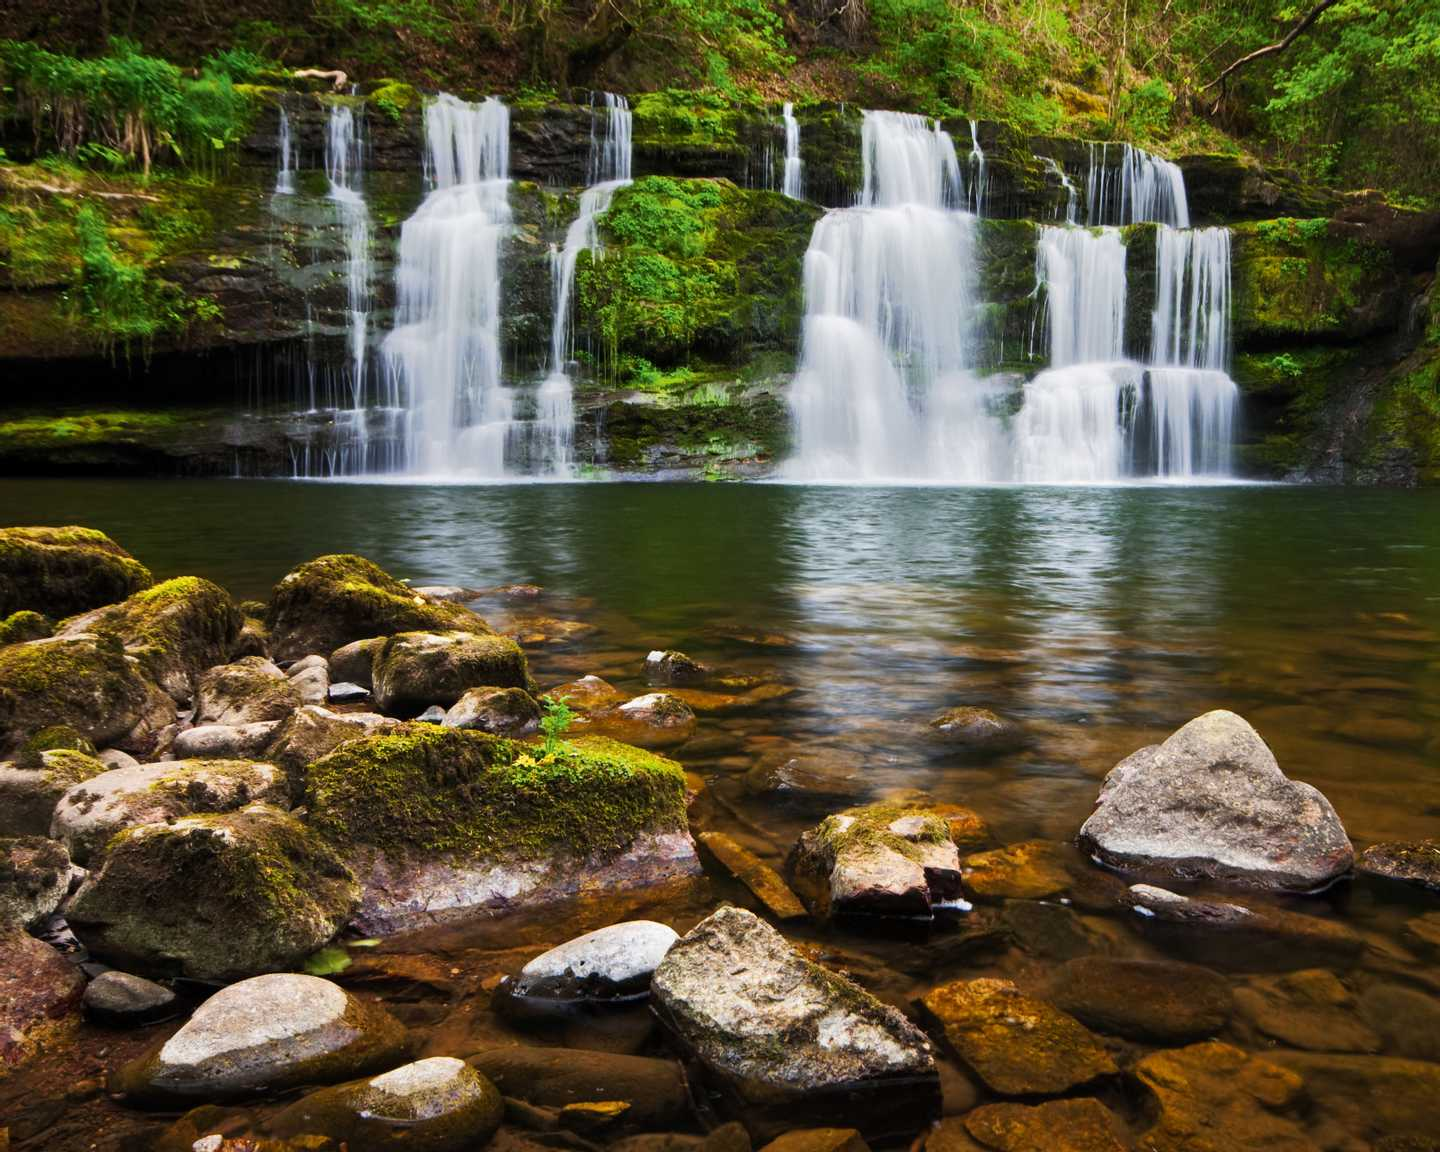 Waterfalls in the Brecon Beacons National Park